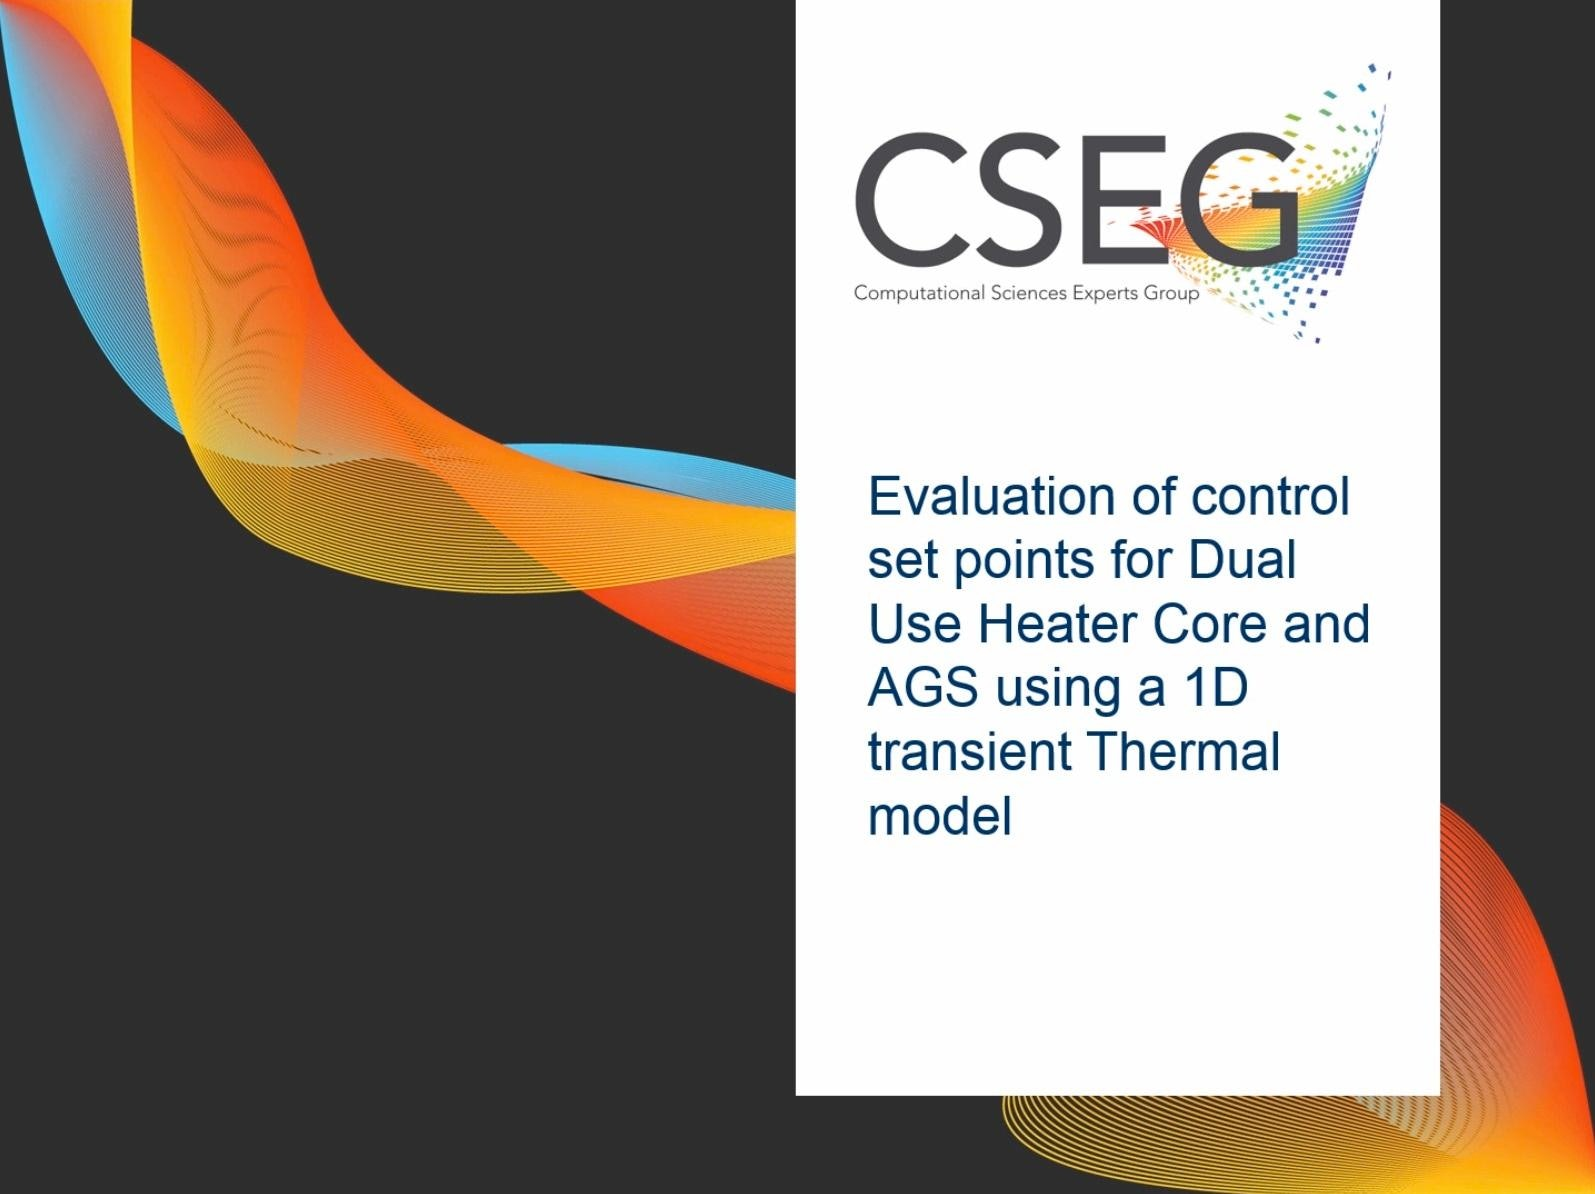 Evaluation of Control Set Points for Dual Use Heater Core and Active Grille Shutter (AGS) Systems Using 1D CFD Vehicle Thermal Modeling